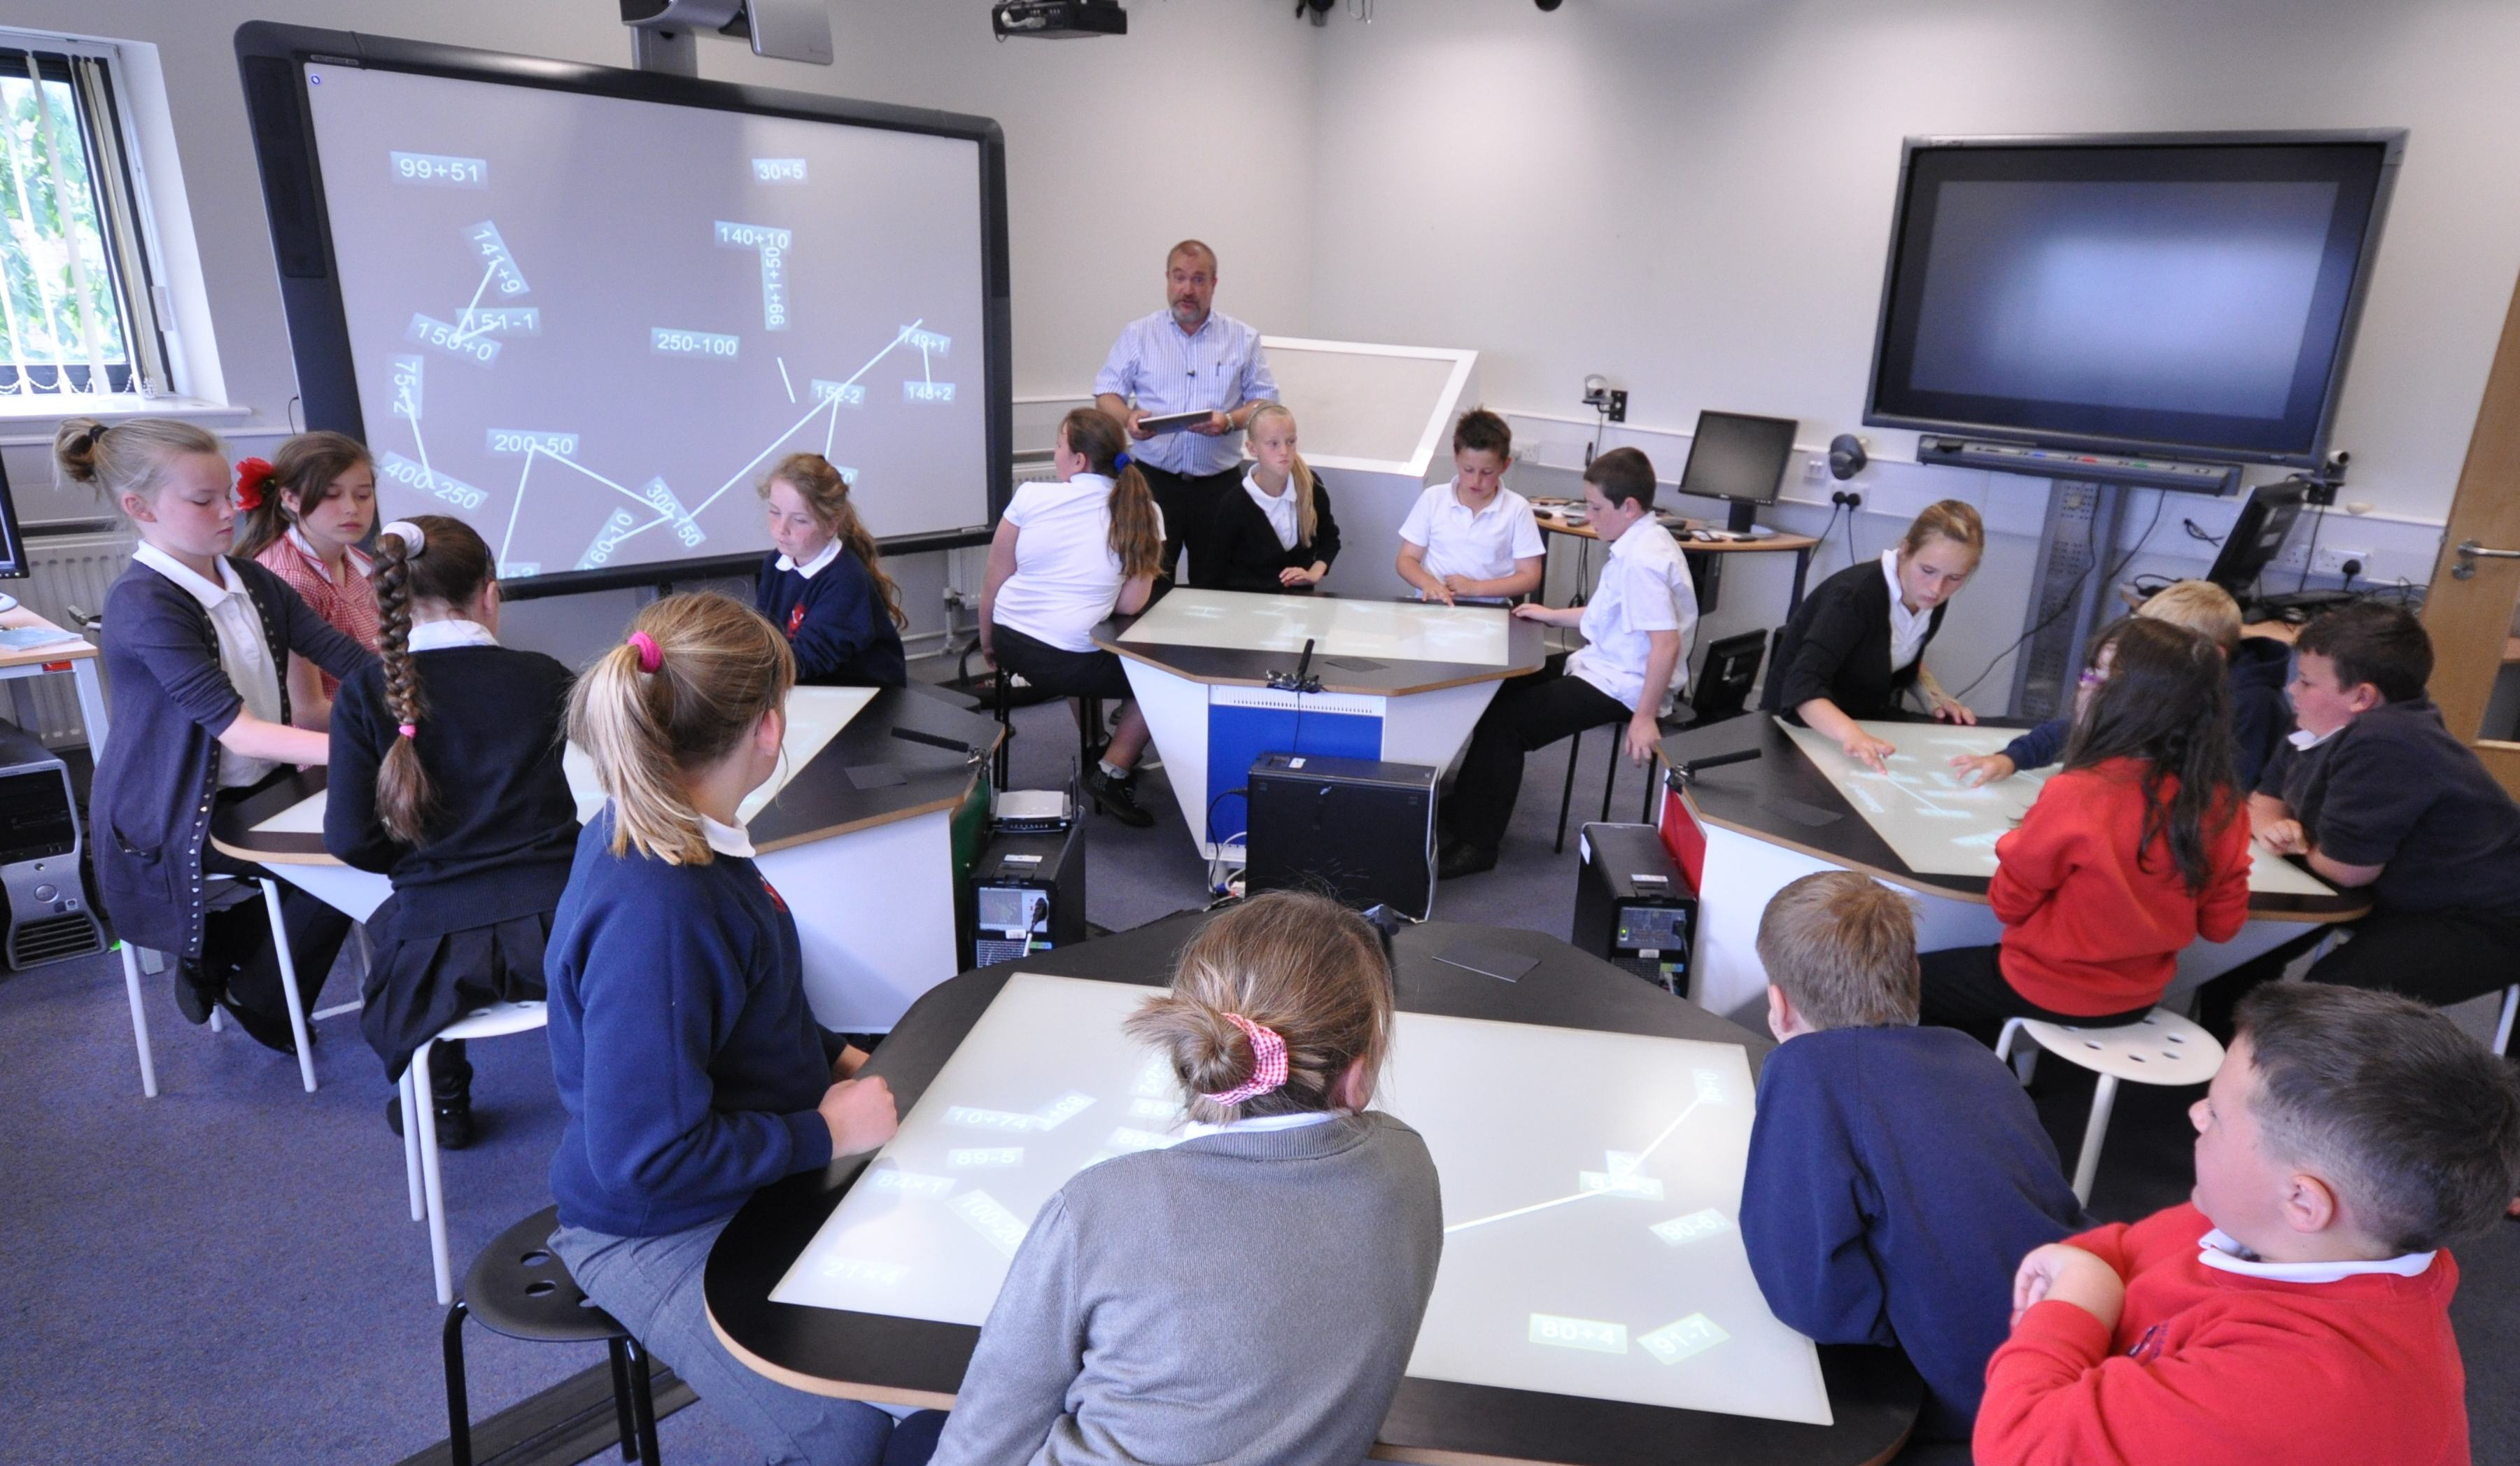 classroom future classrooms tech technology education elementary desk learning desks tables touch multitouch room multi collaboration digital college waack spaces